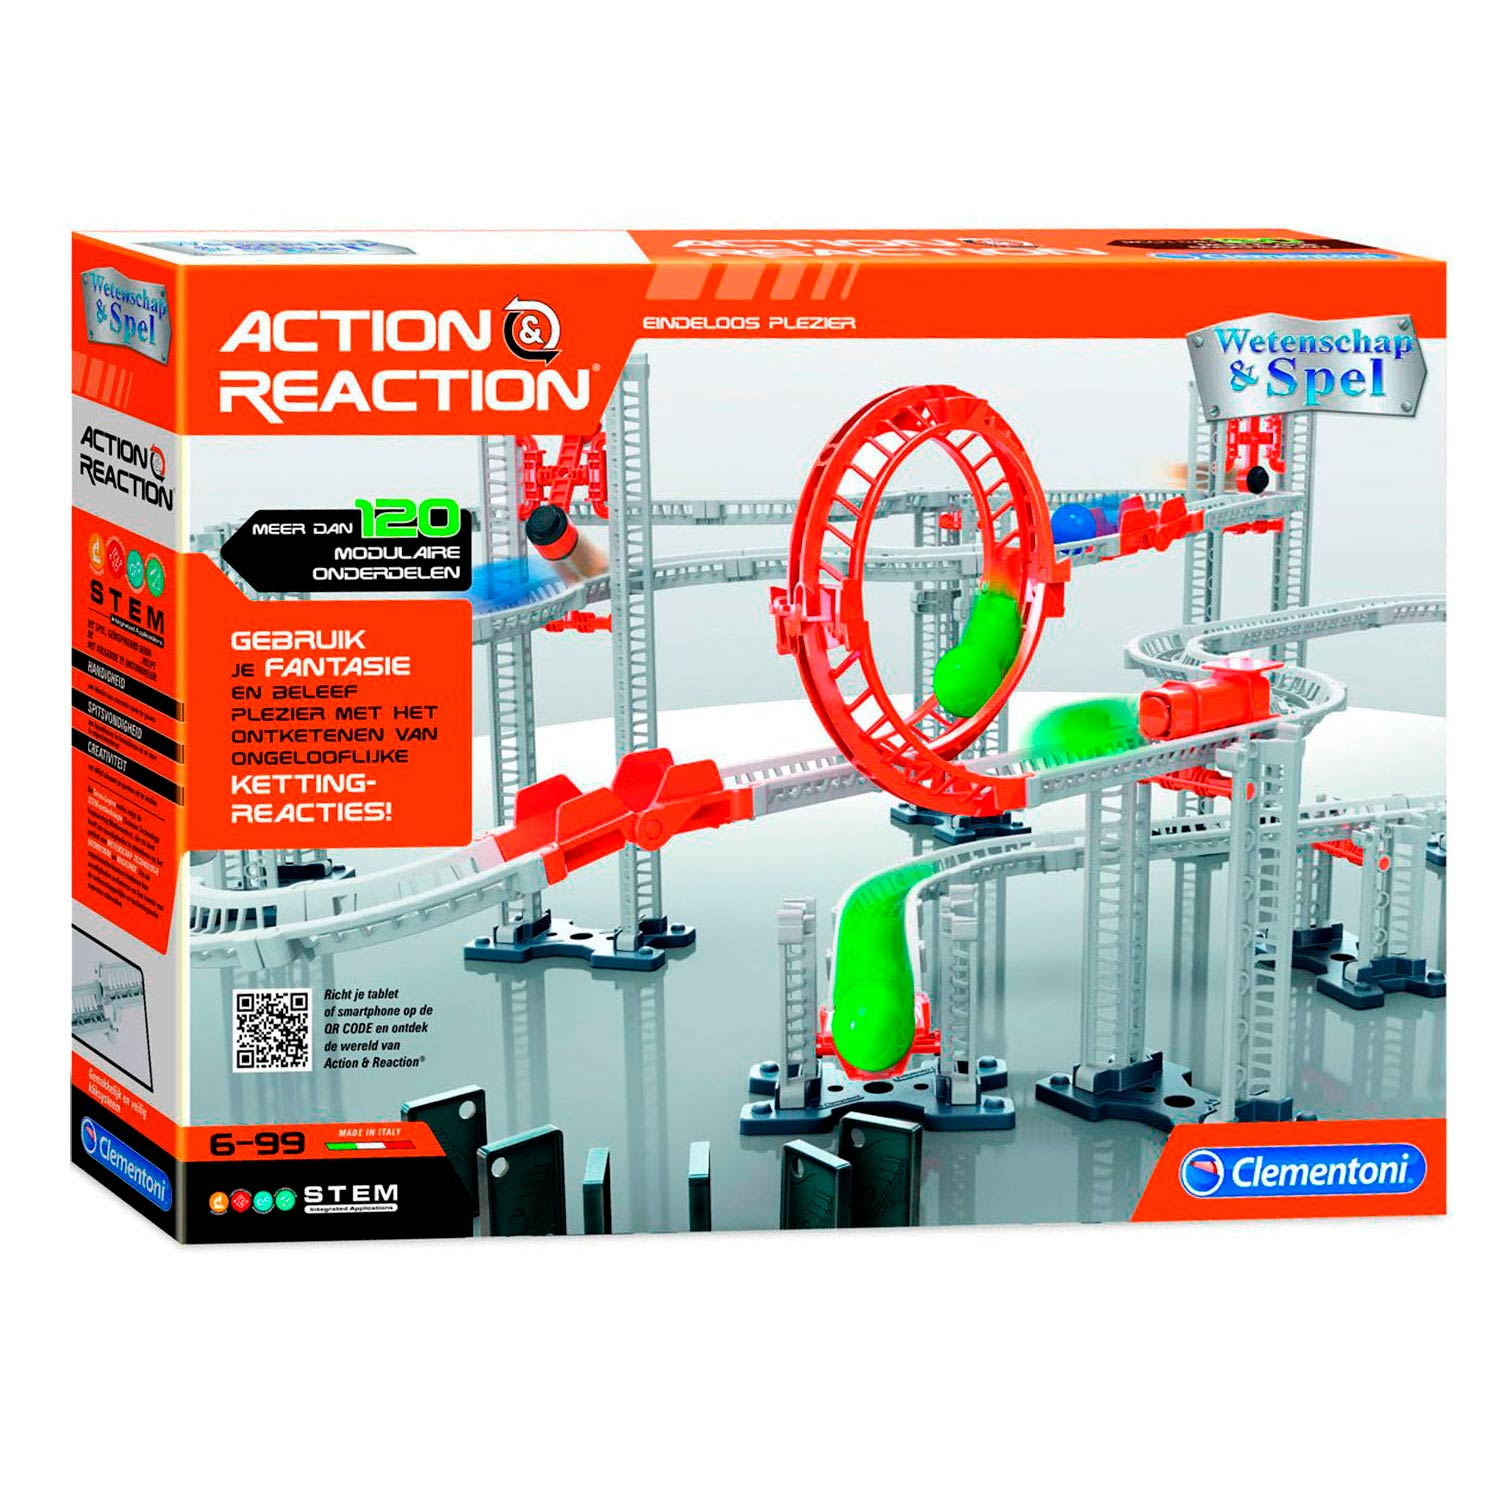 Clementoni Action & Reaction - Luxe Speelset, 120dlg.